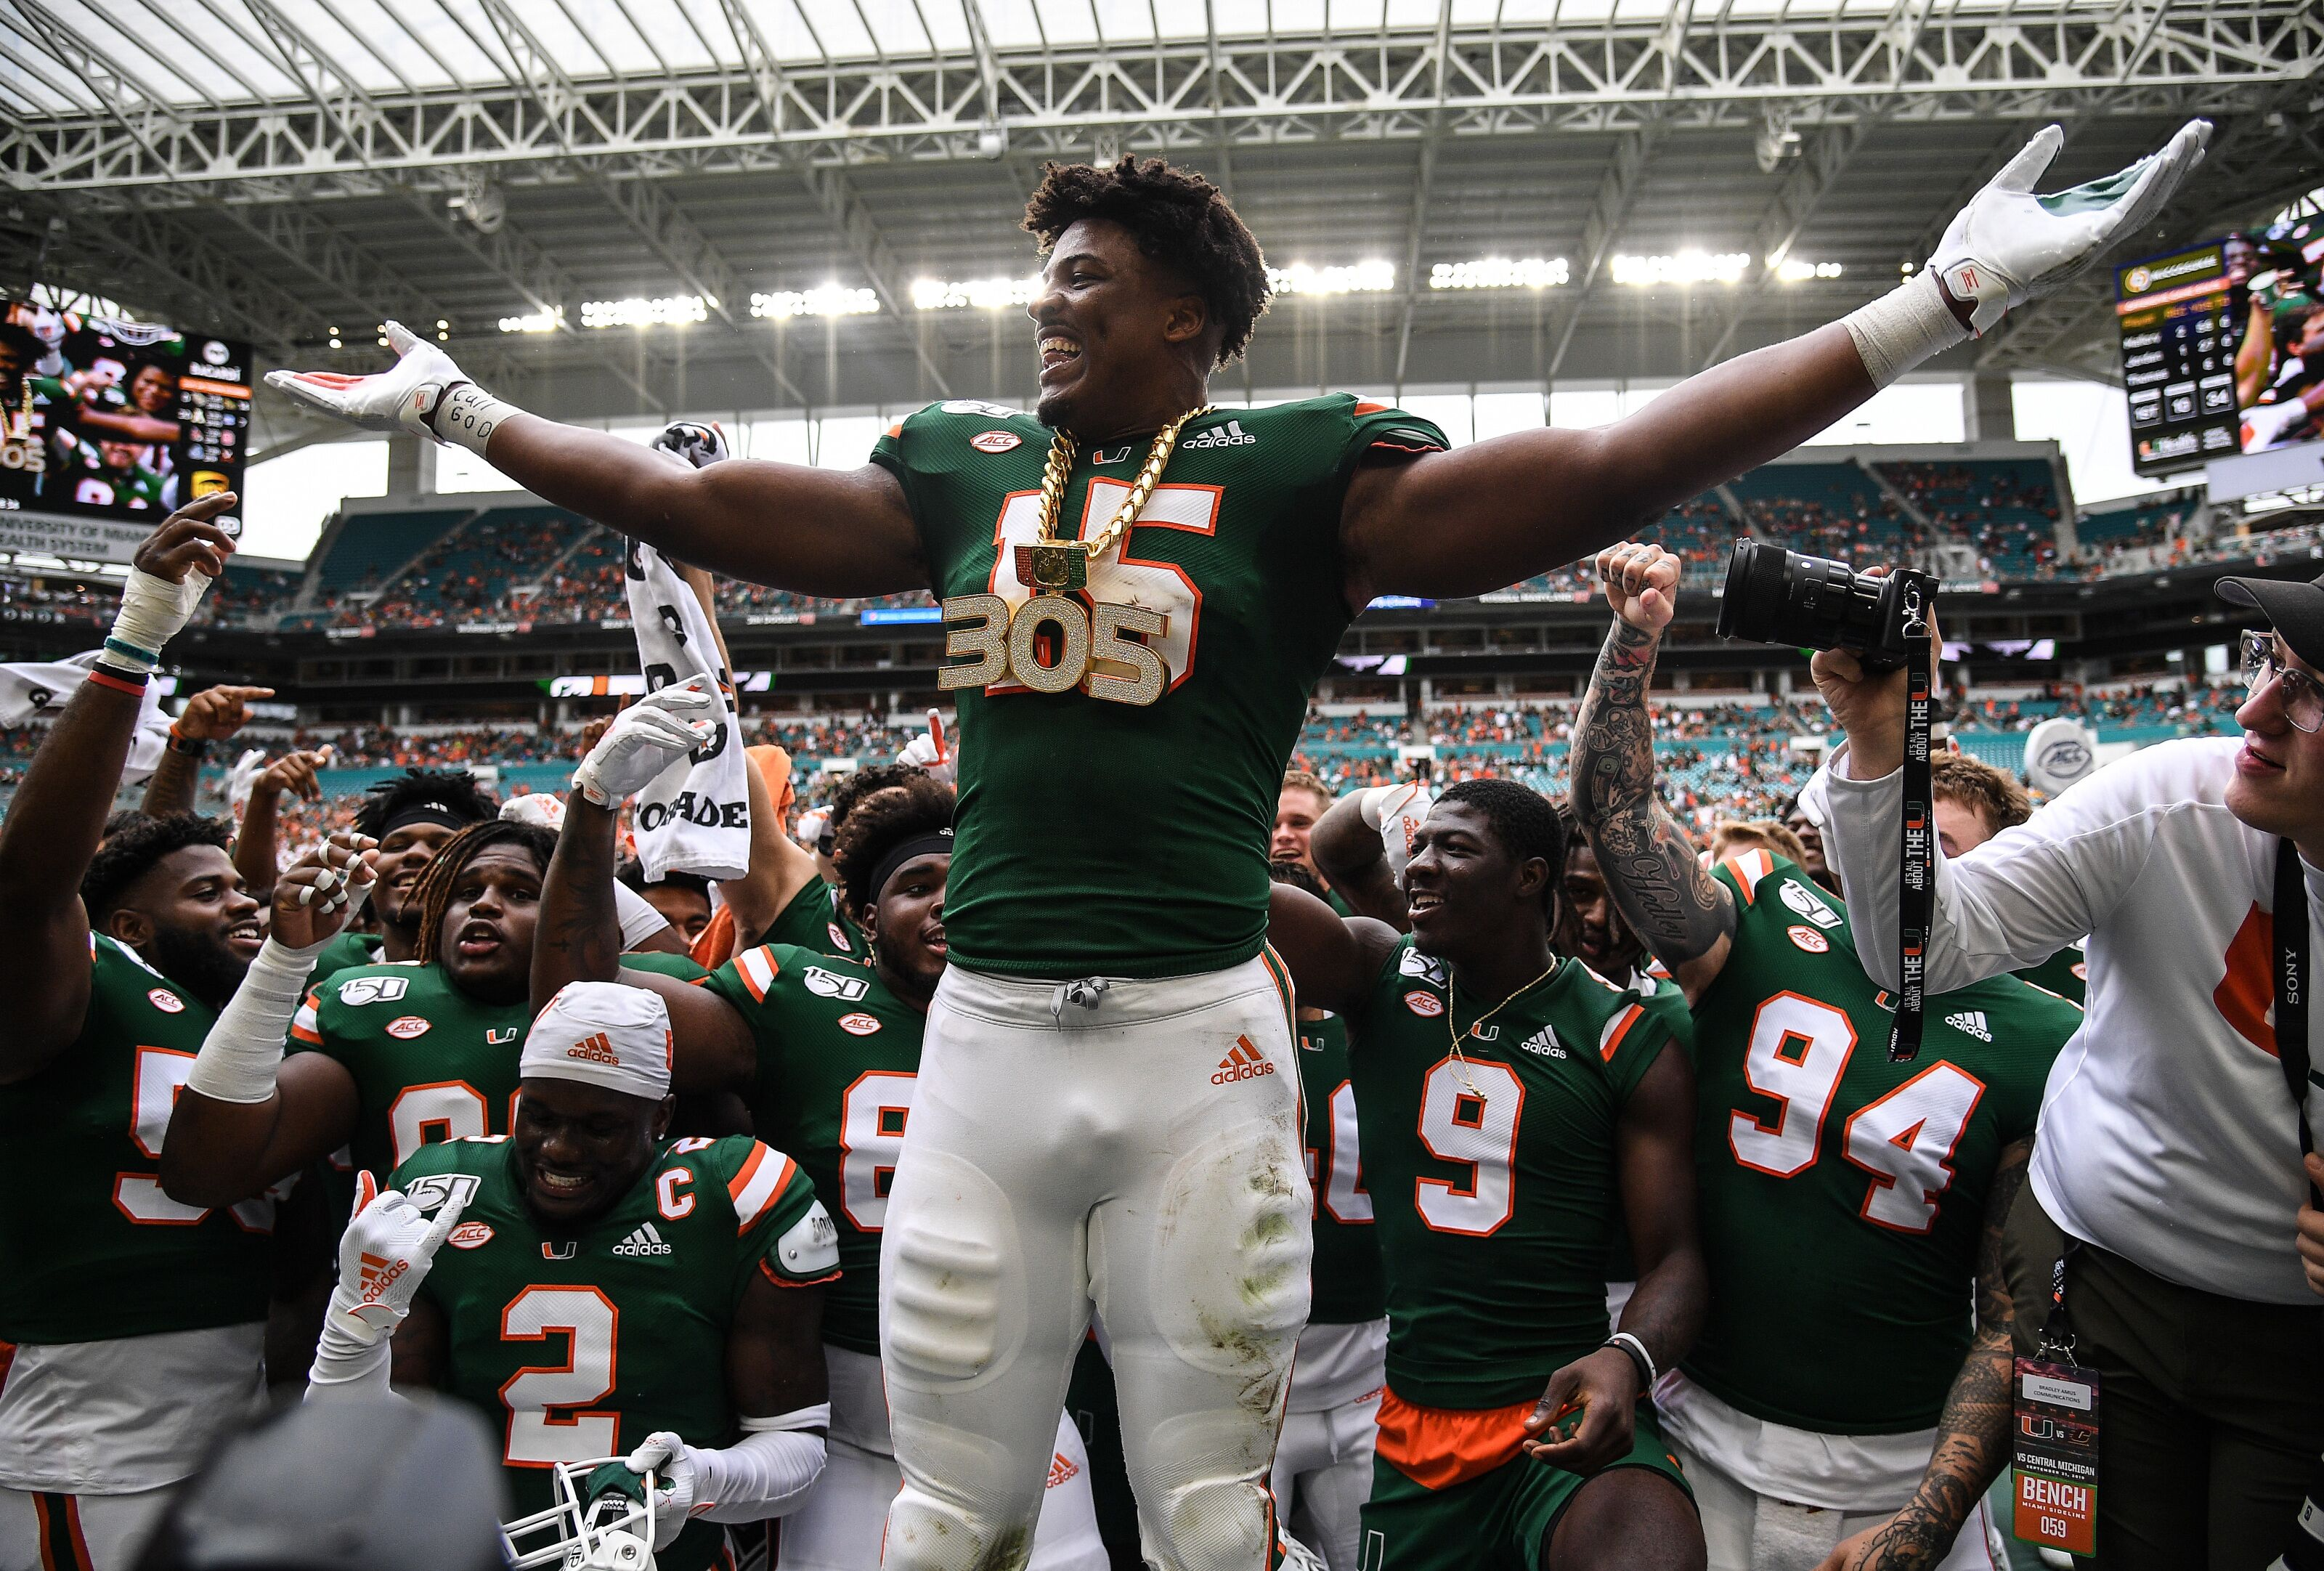 Miami football players awareness on field will create playing time